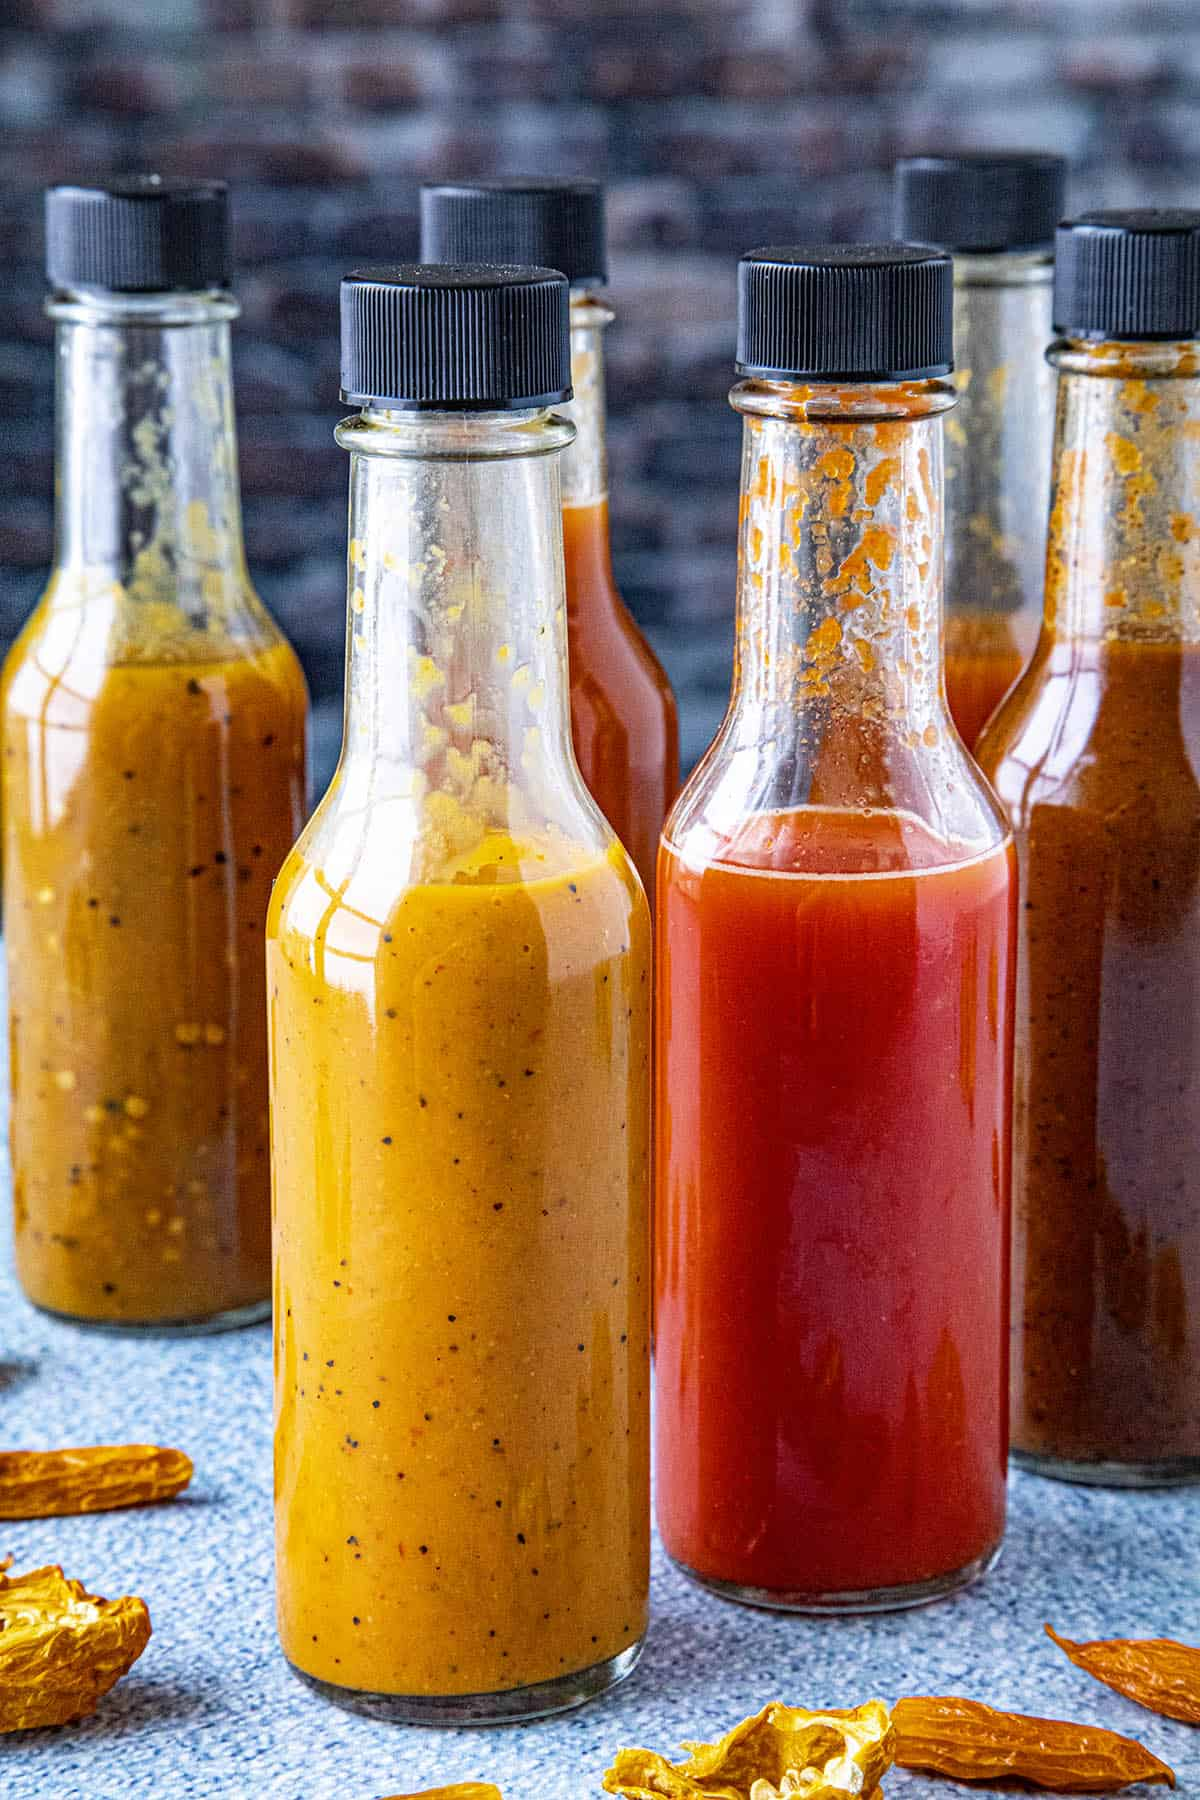 How to Make Hot Sauce from Dried Peppers